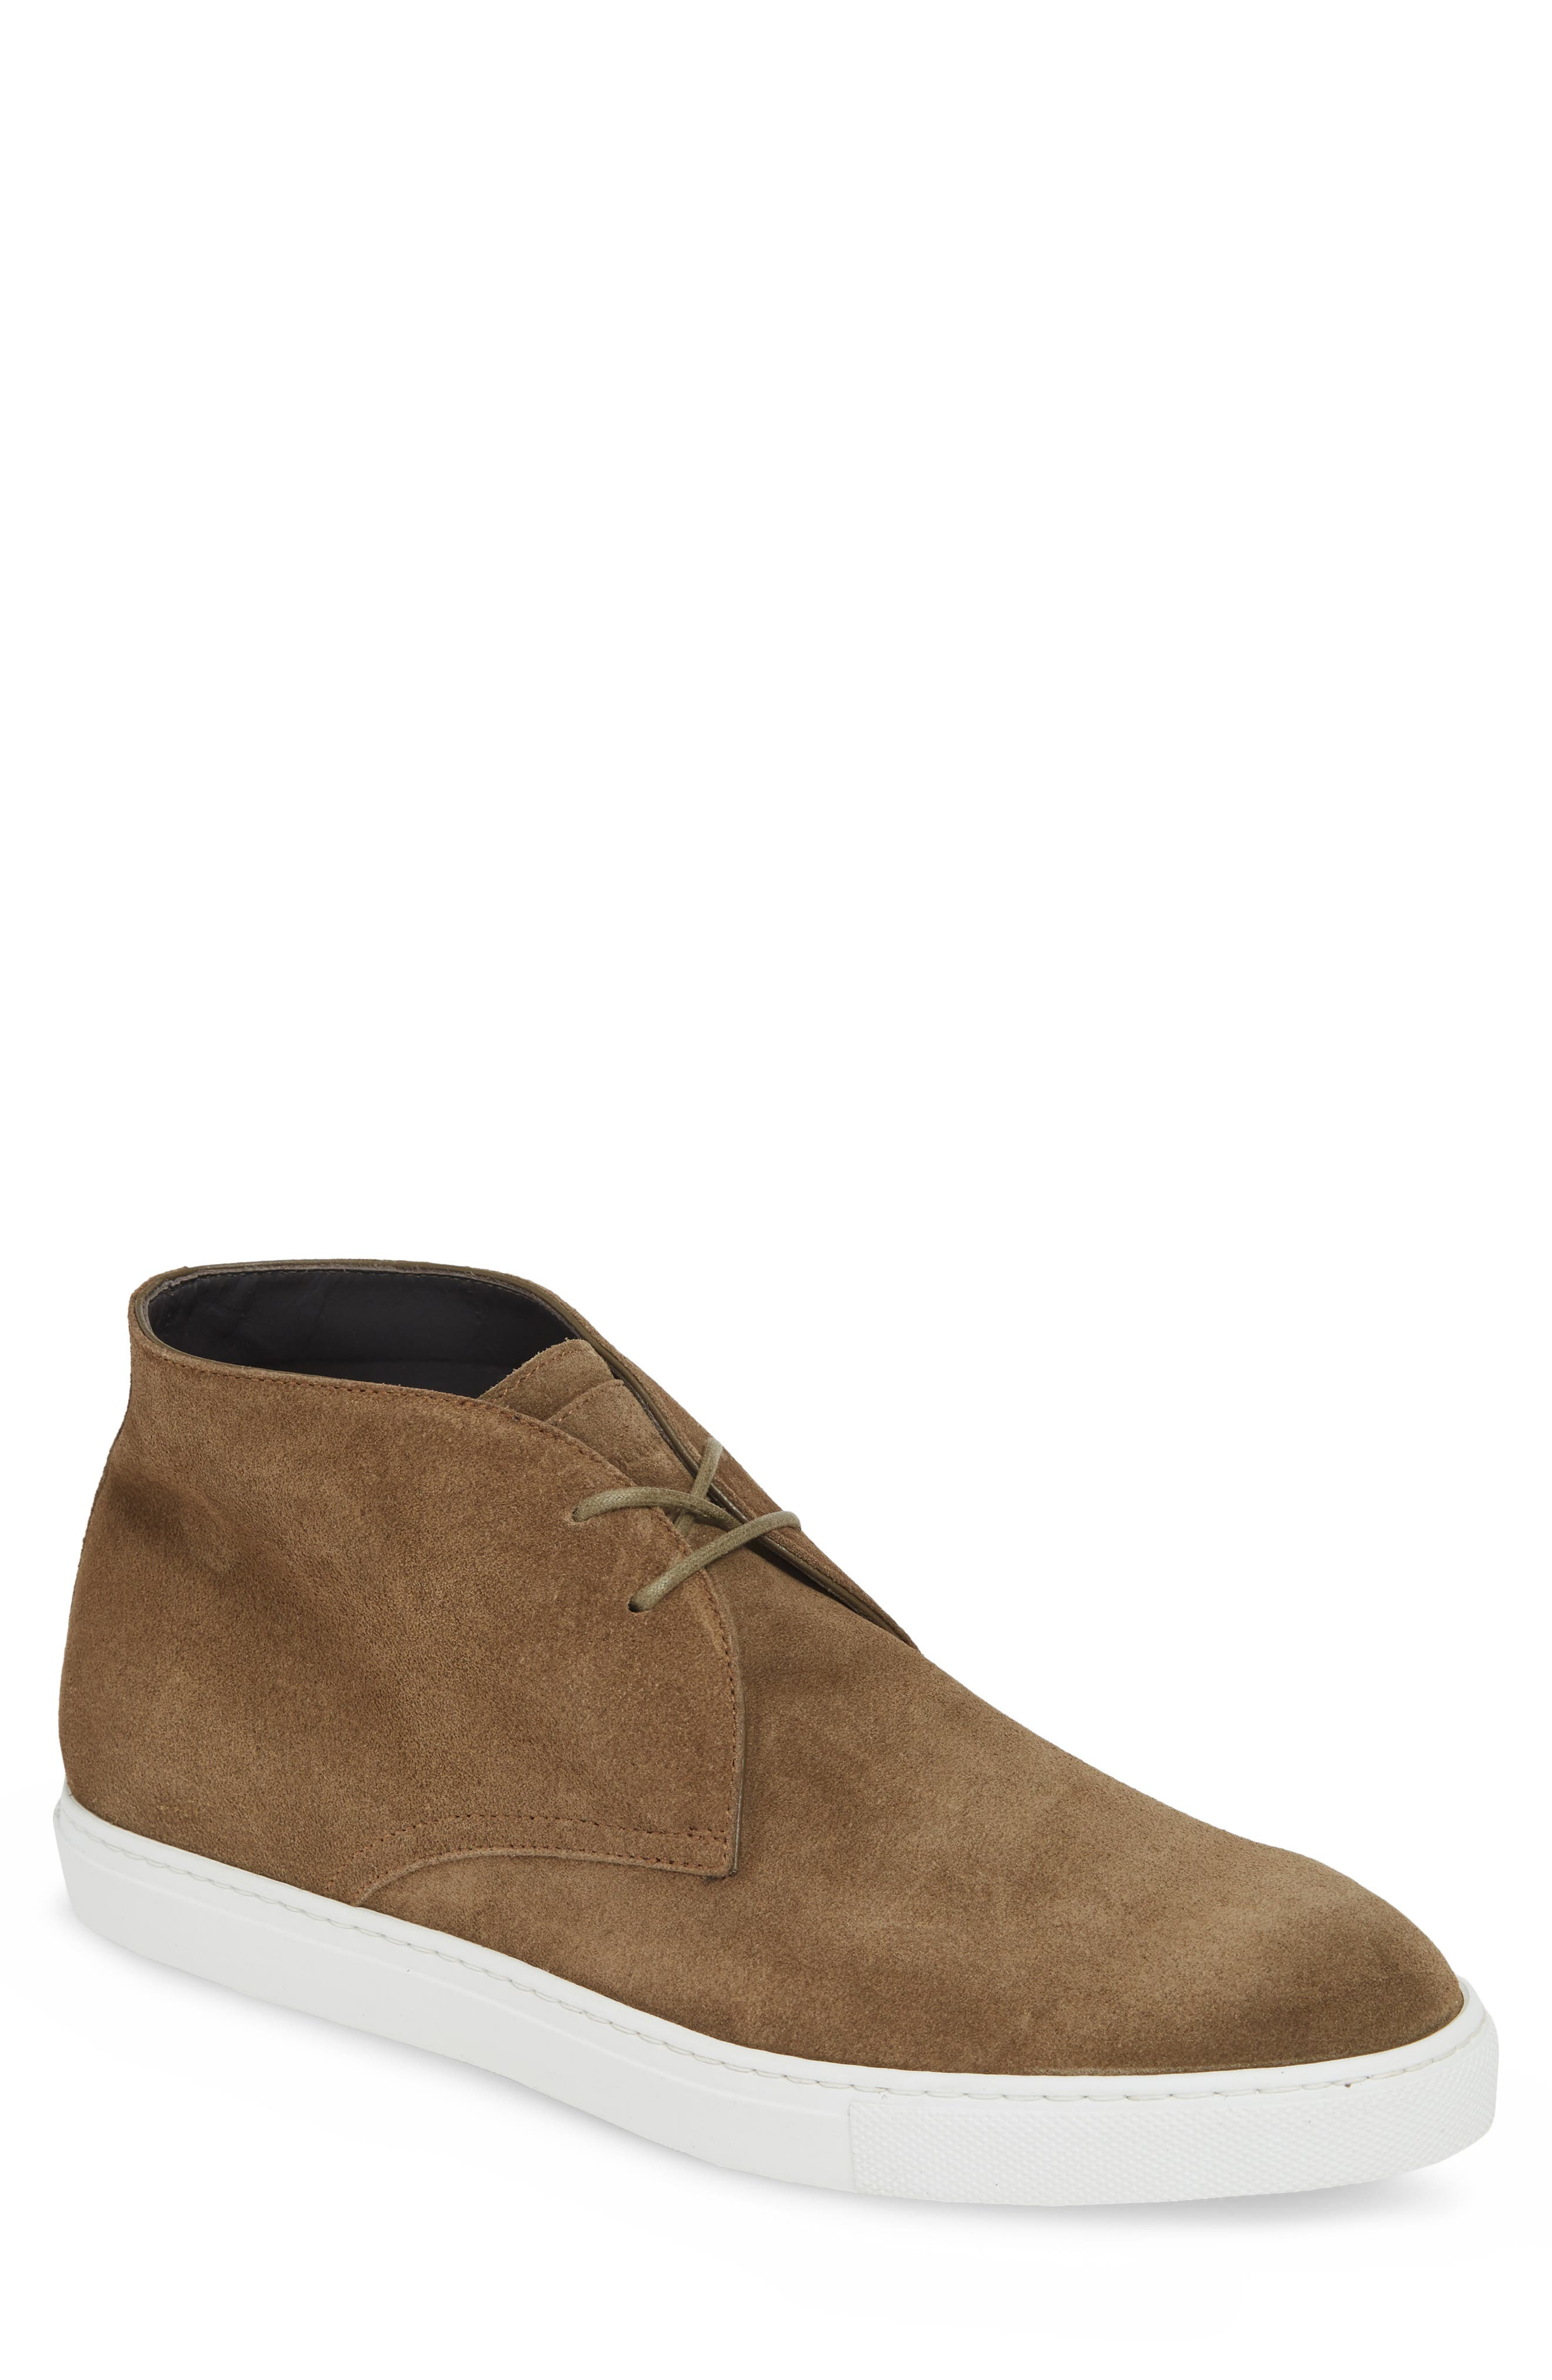 To Boot New York Grid Chukka Boot, Brown